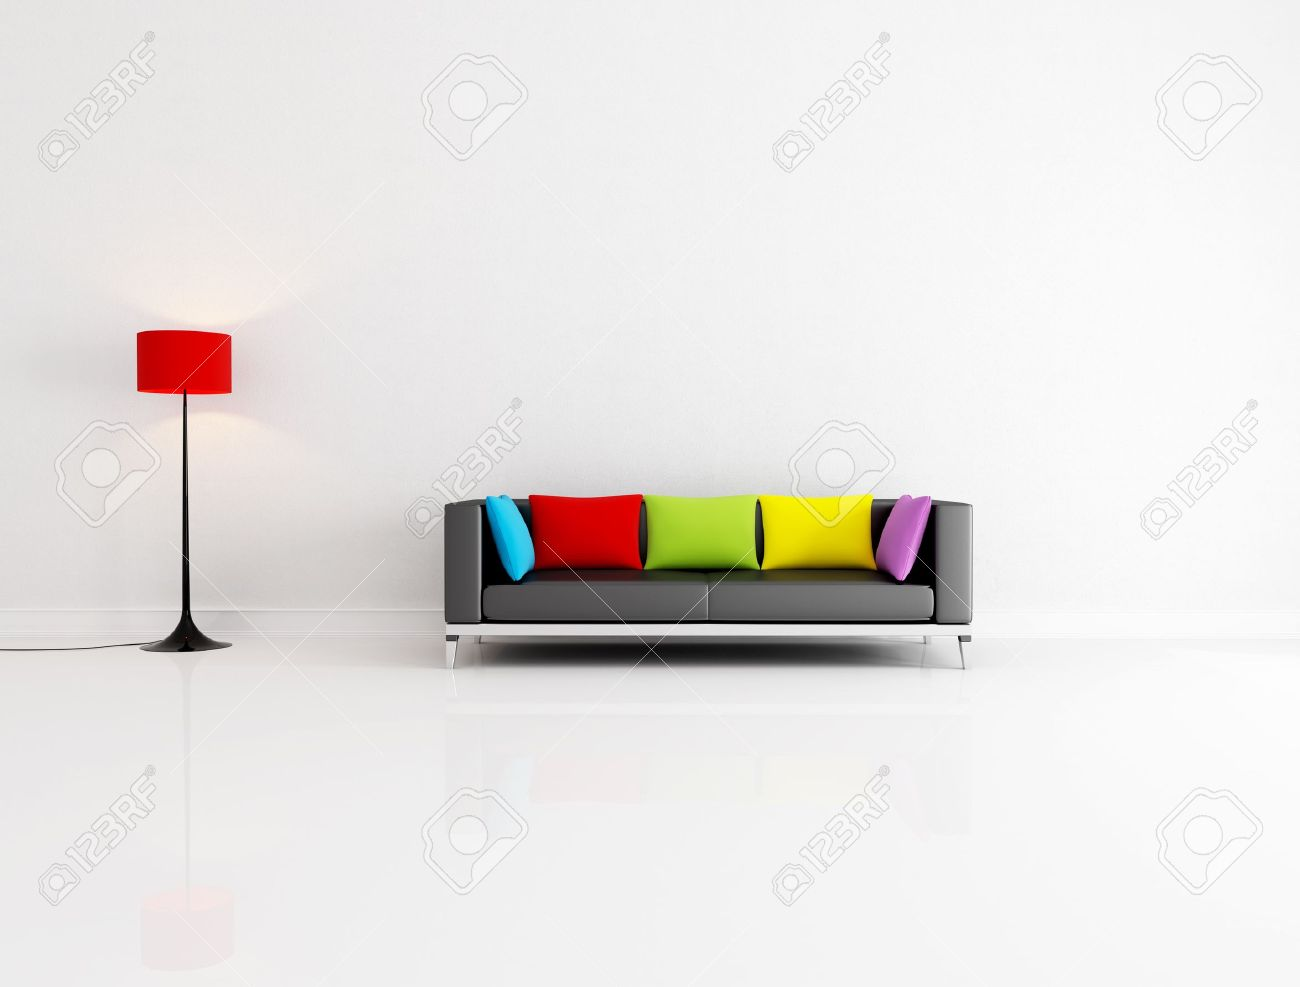 white minimalist living room with black couch with colored cushion - rendering Stock Photo - 6998703